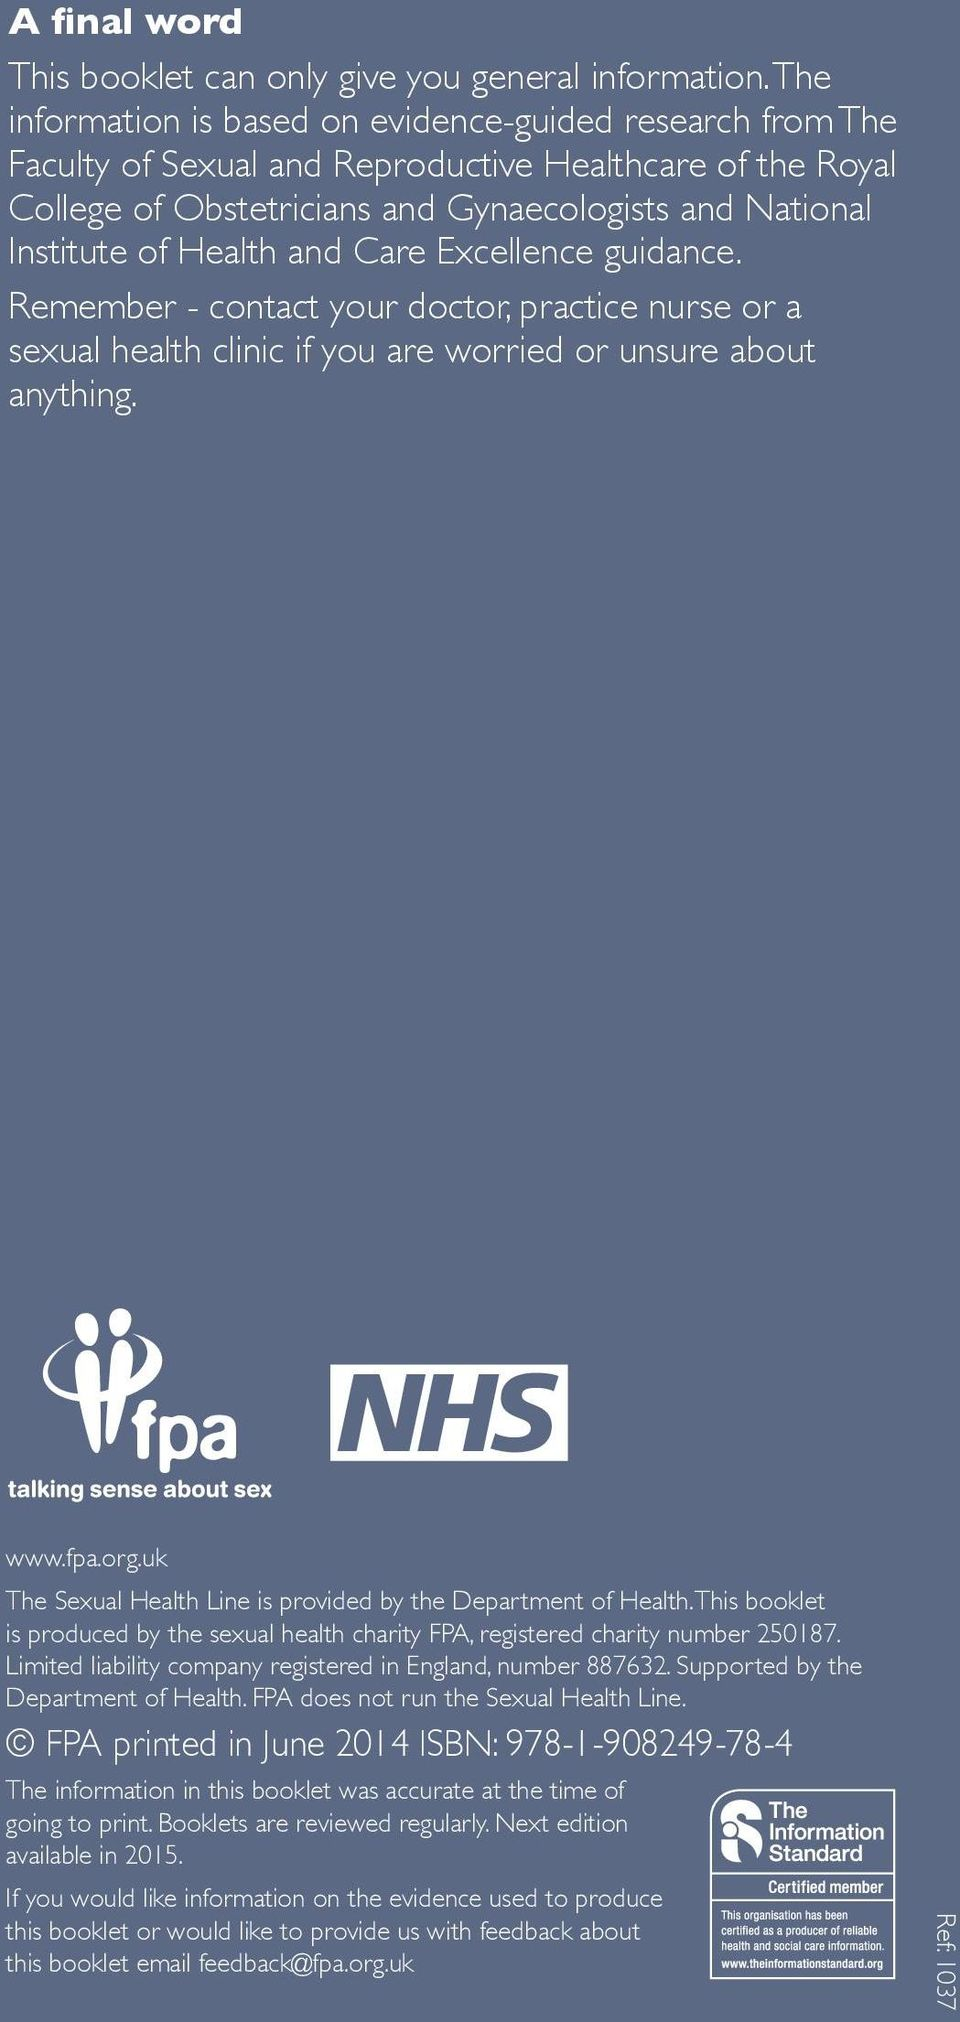 and Care Excellence guidance. Remember - contact your doctor, practice nurse or a sexual health clinic if you are worried or unsure about anything. www.fpa.org.